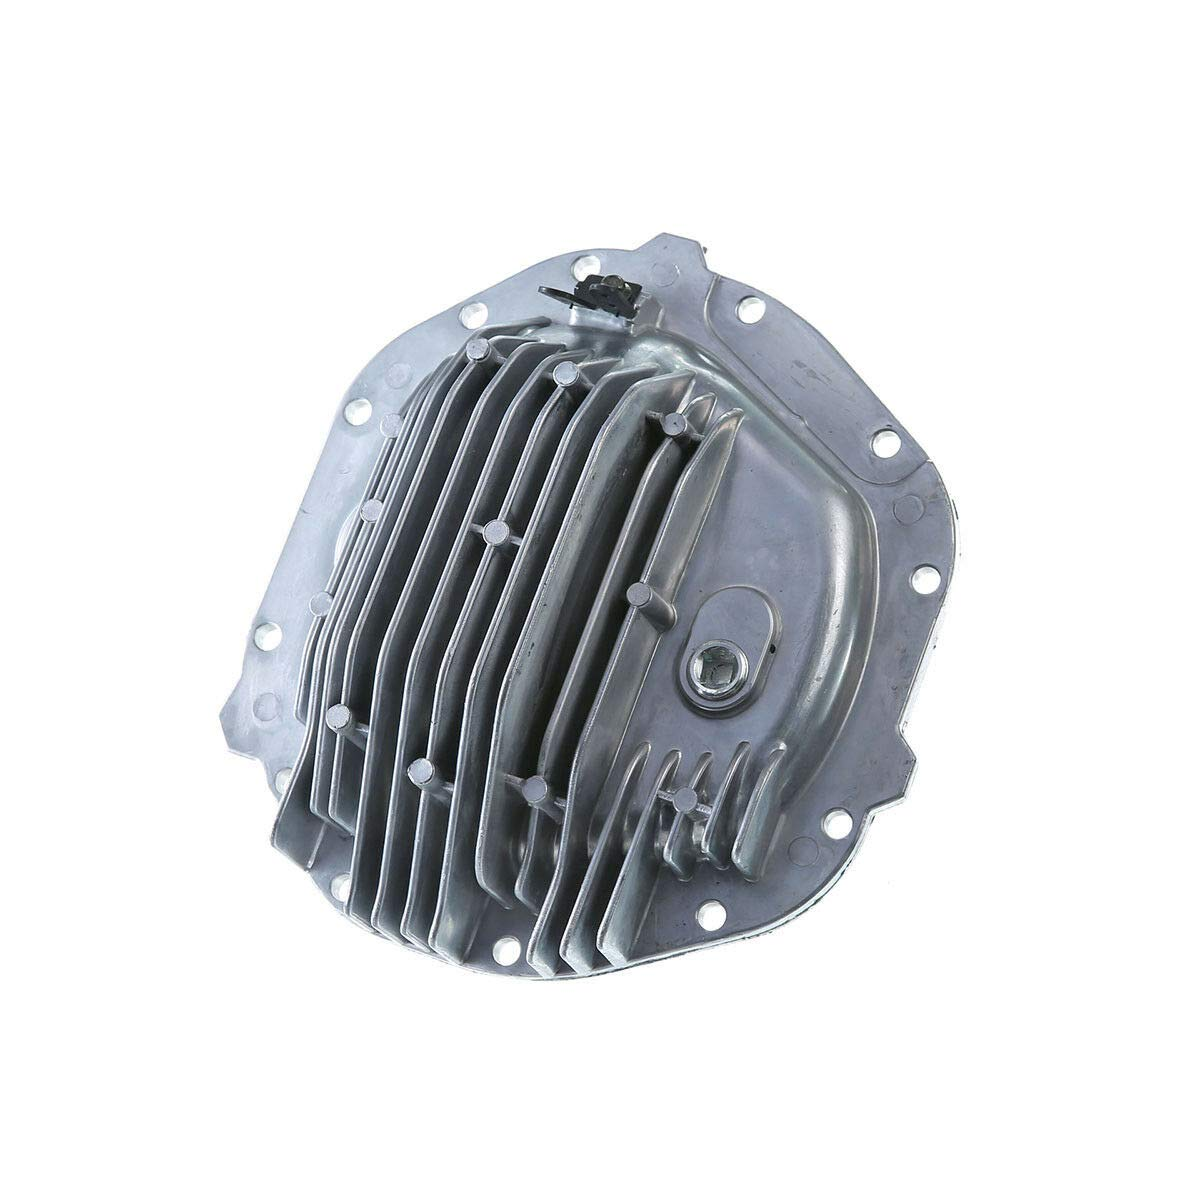 Rear Differential Cover for 2004-2015 Nissan Titan V8 5.6L